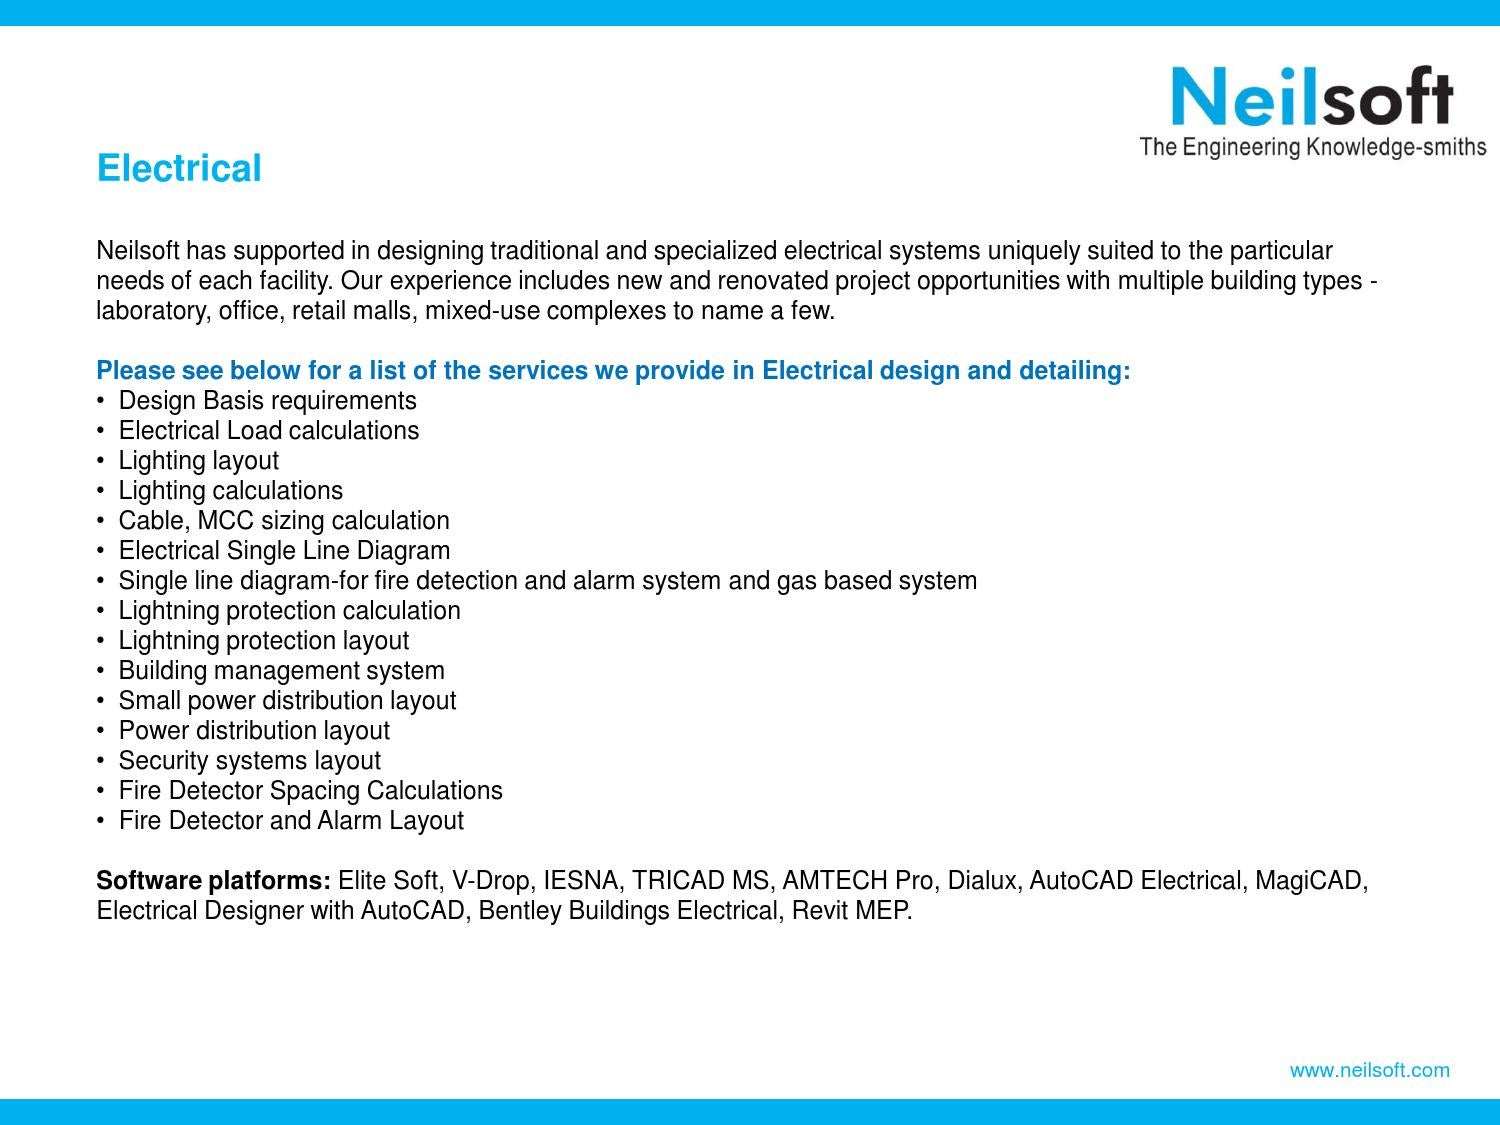 Building Management System Wiring Diagram Library Electric Electrical Design And Detailed Engineering At Neilsoft By